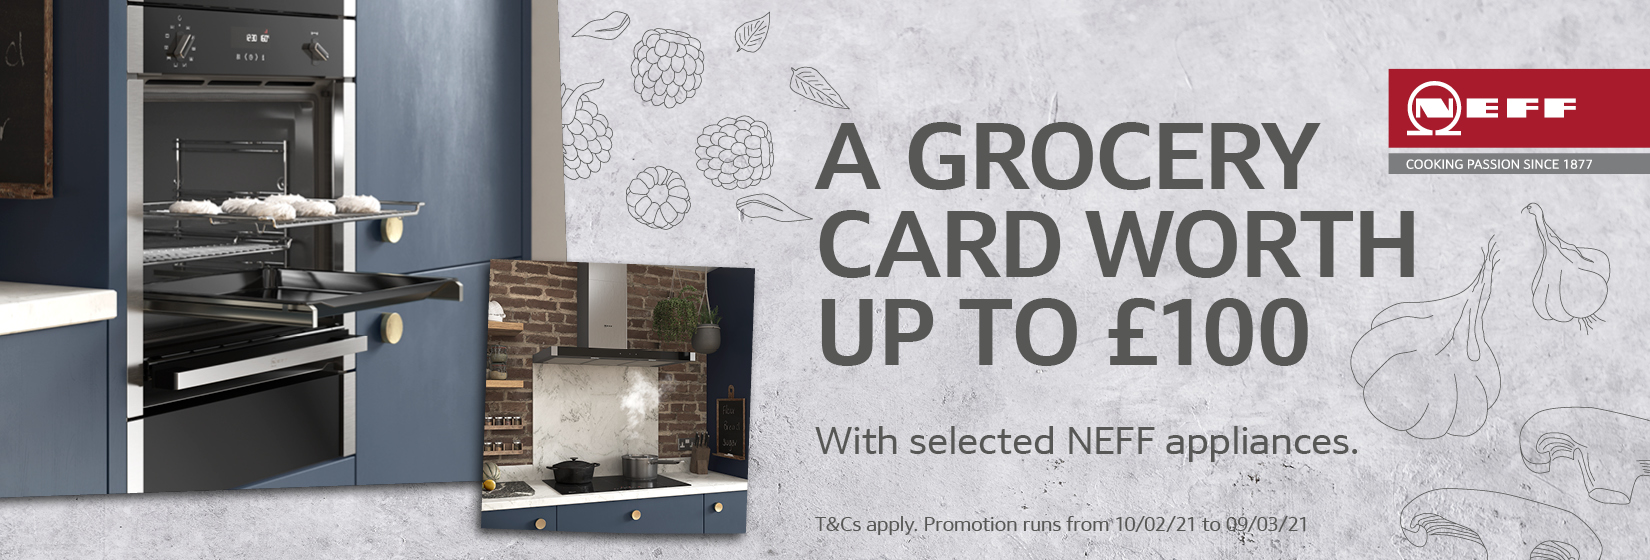 NEFF Grocery Card Banner